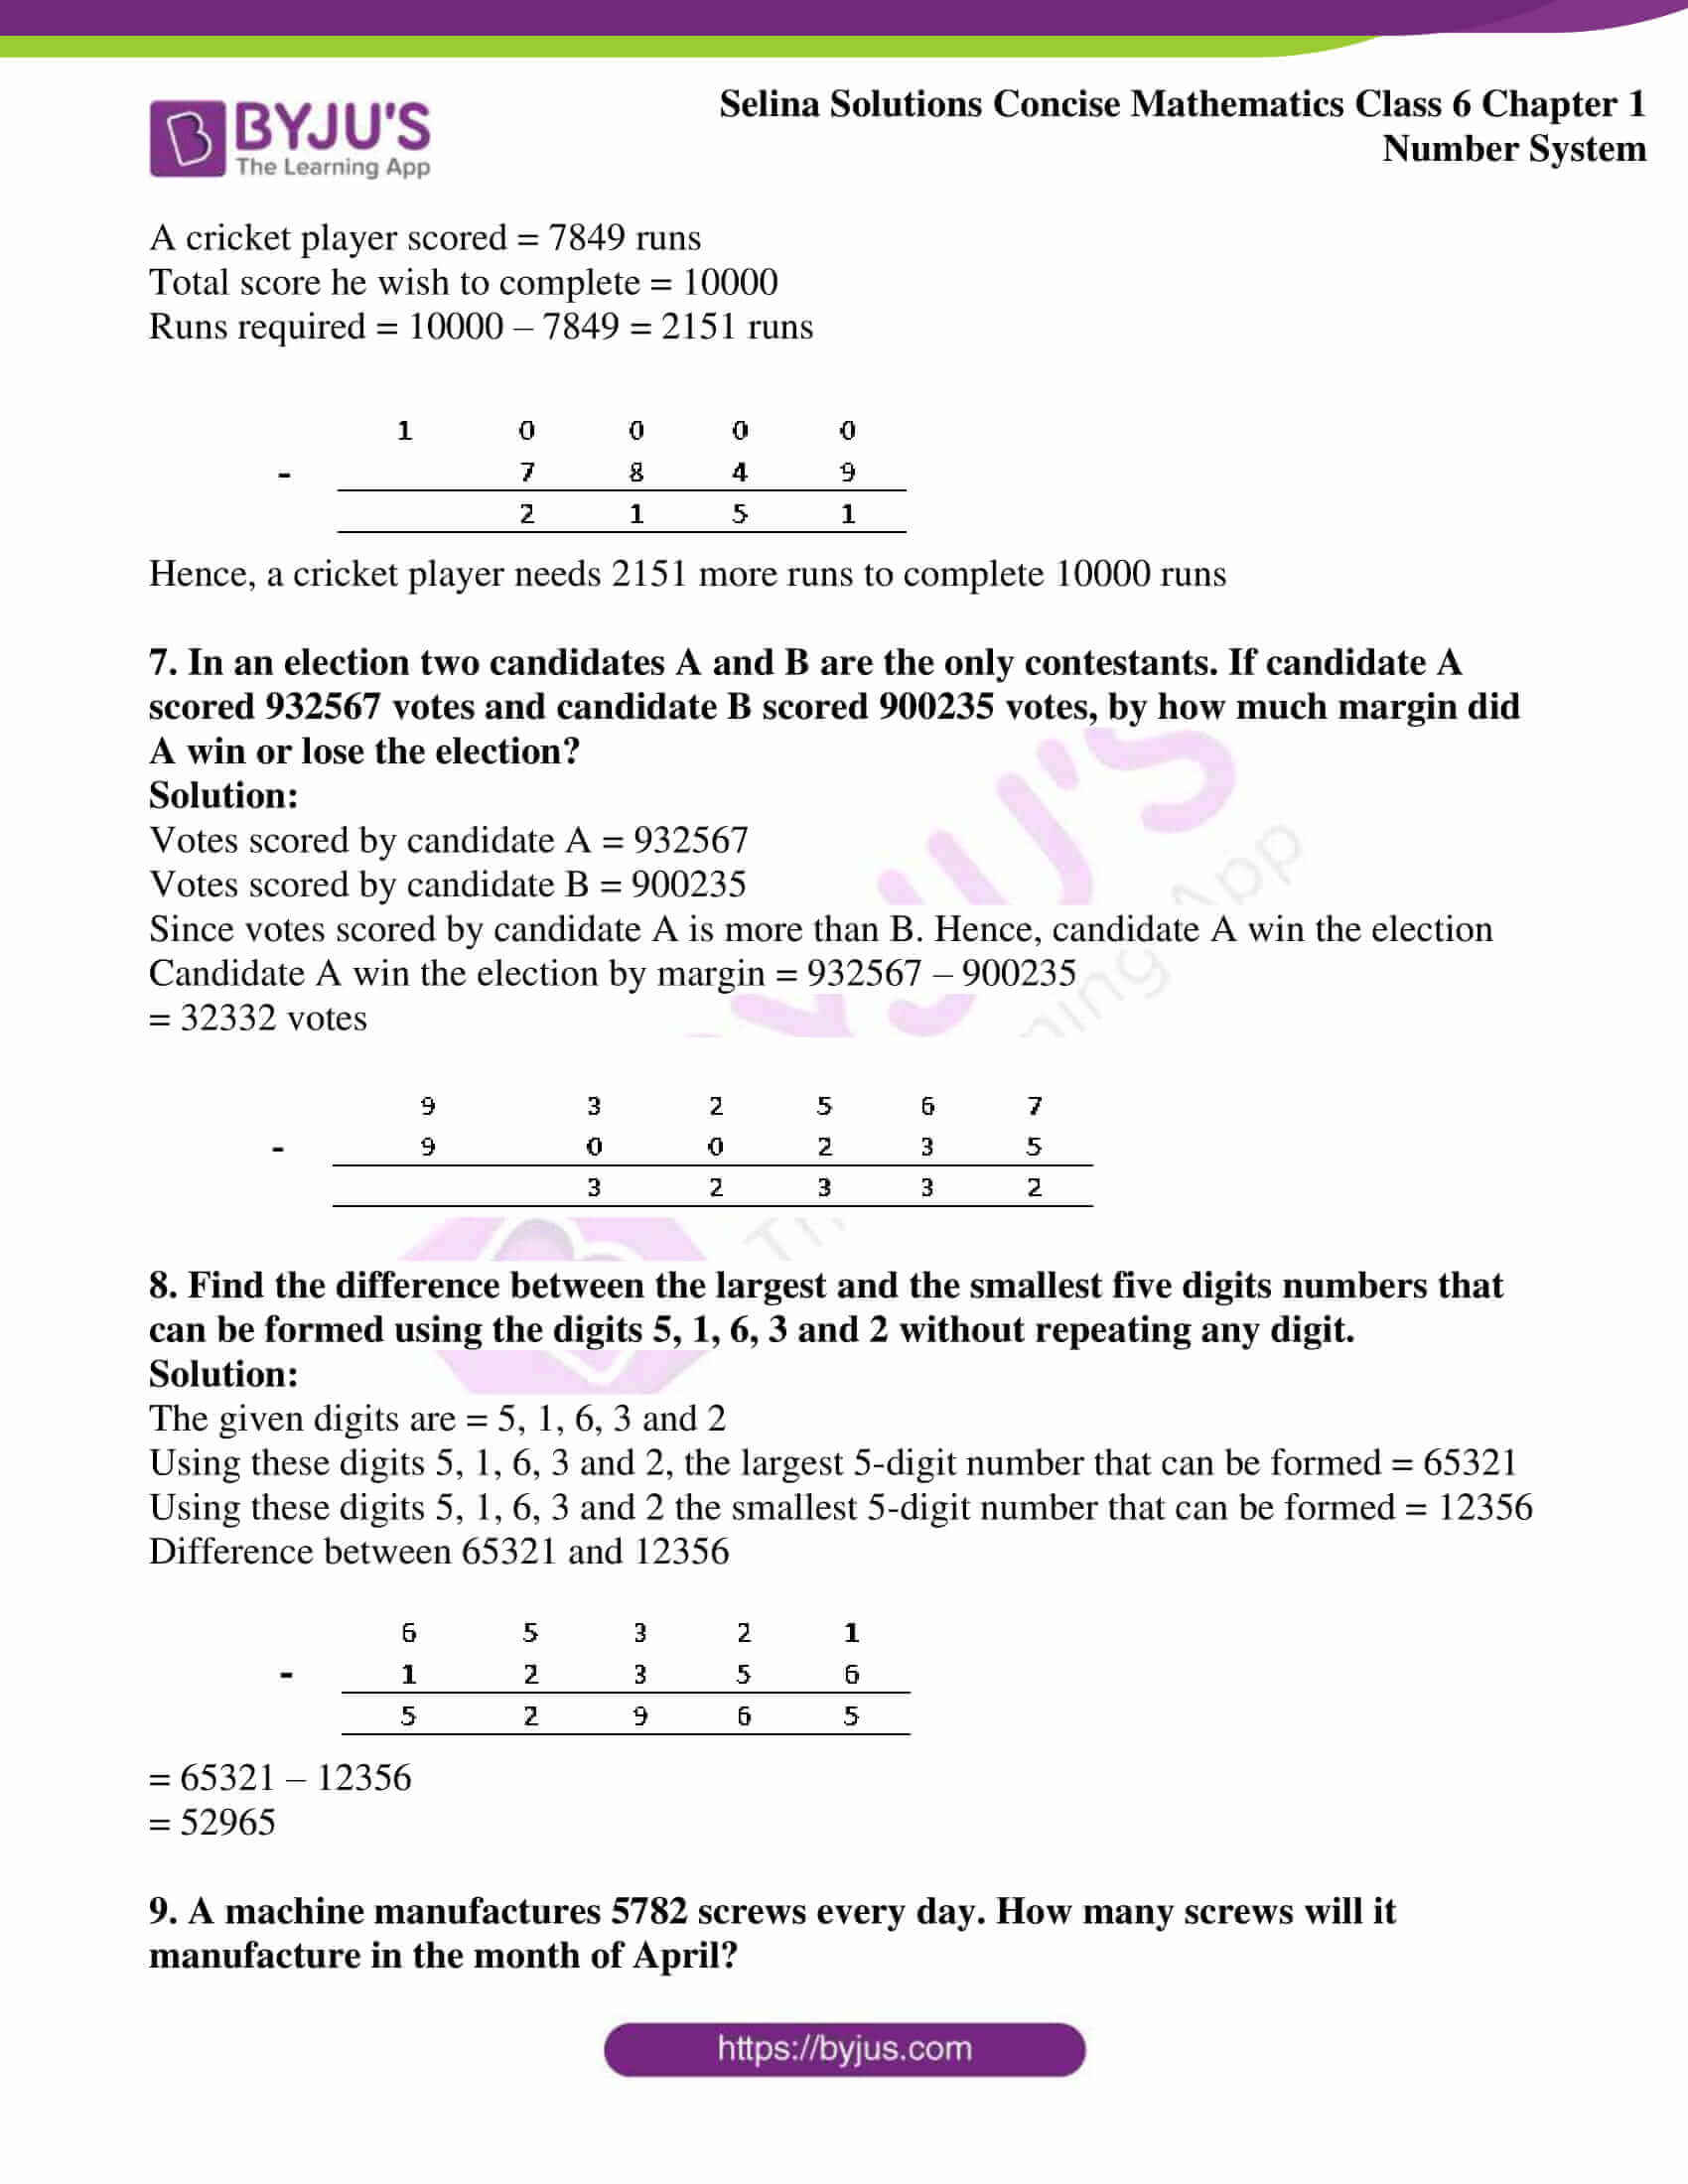 selina solution concise maths class 6 chapter 1 ex b 3